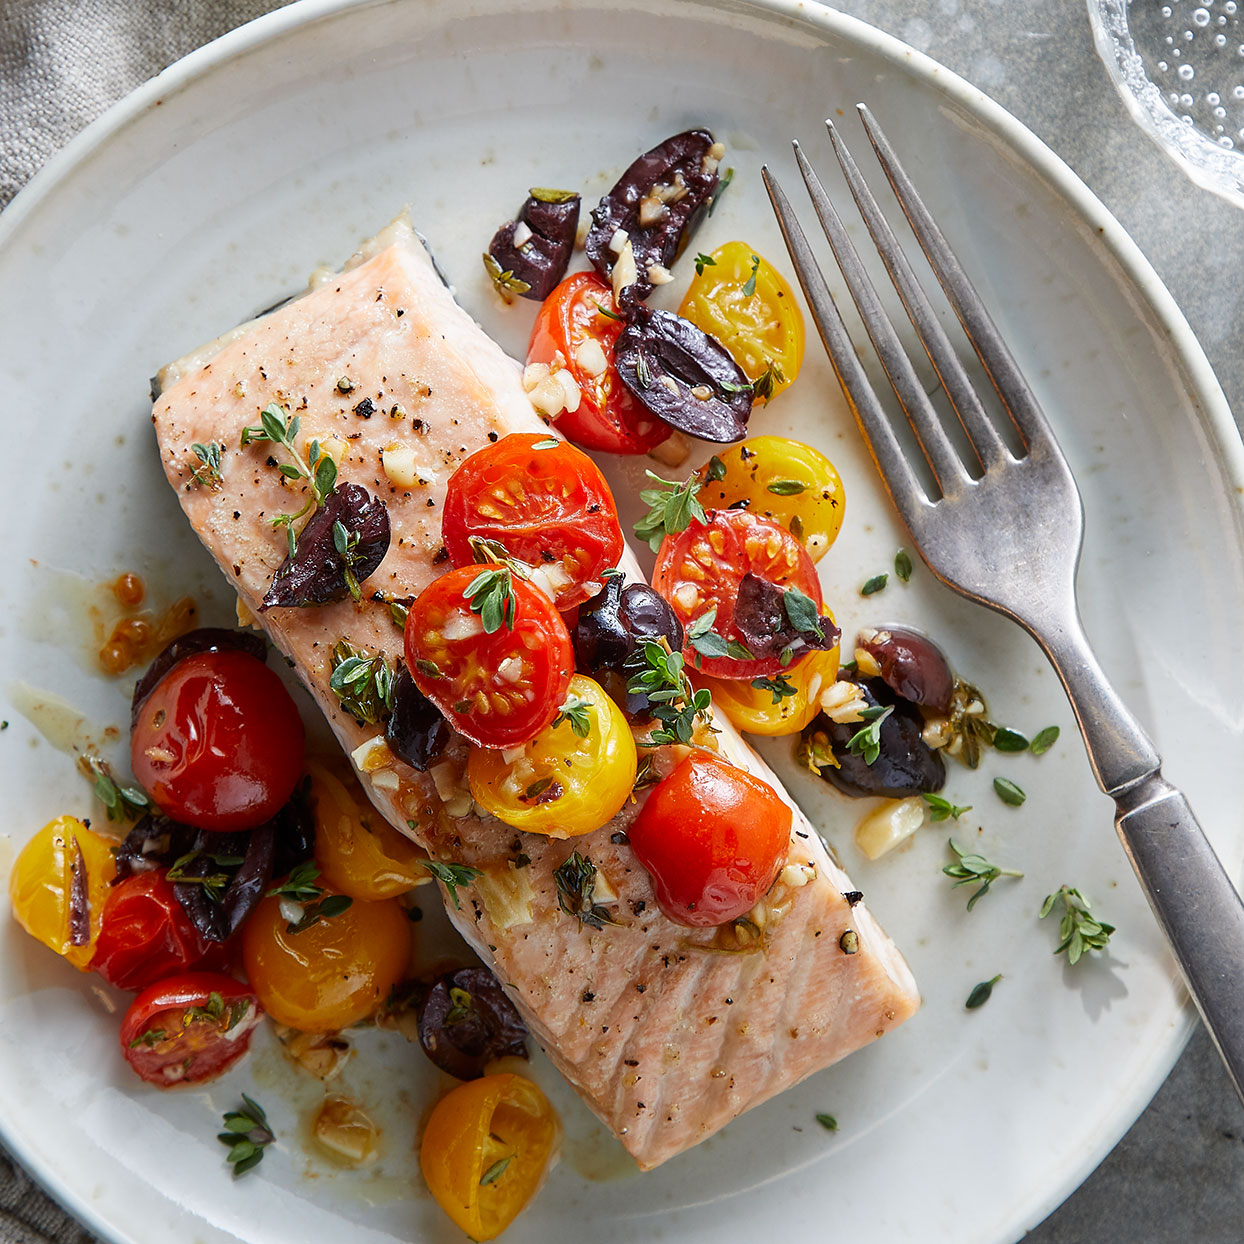 Keep the mess to minimum with this easy sheet-pan dinner. Cherry tomato halves roast alongside salmon fillets and make a delicious topping combined with olives, garlic and thyme in this easy fuss-free dinner.